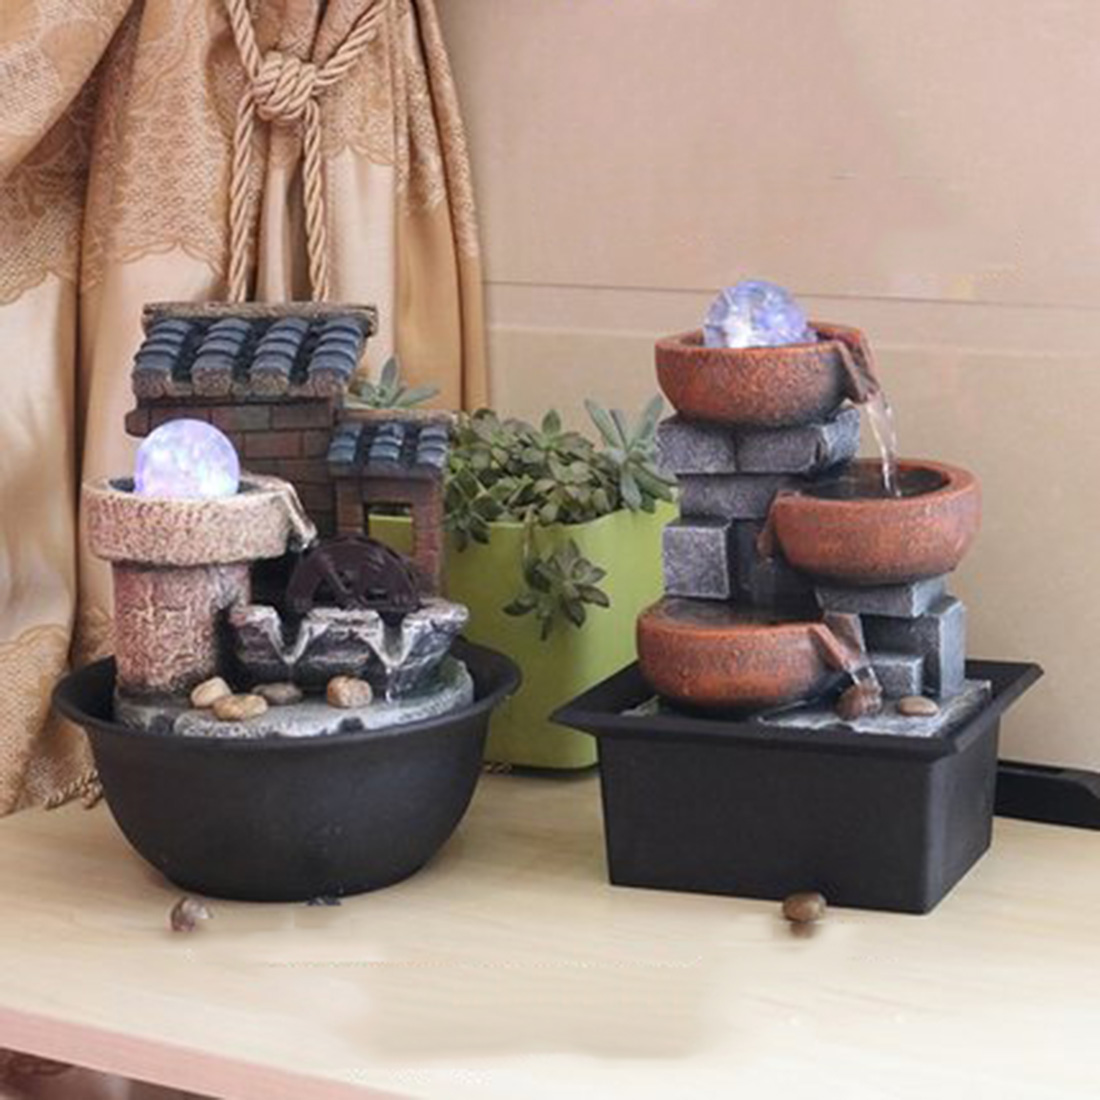 Water Fountains For Home Decor: Creative Indoor Water Fountains Feng Shui Resin Crafts